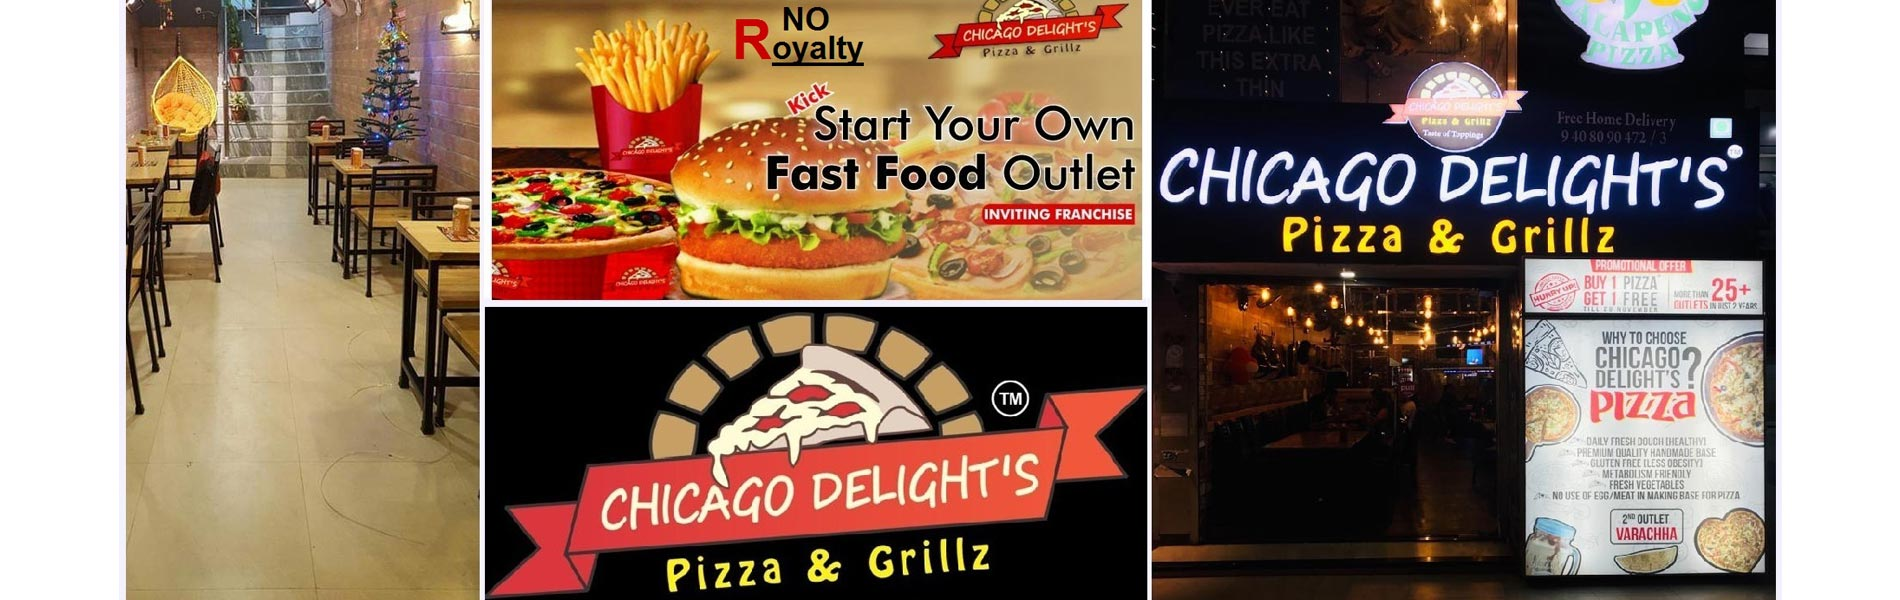 Chicago Delights Pizza